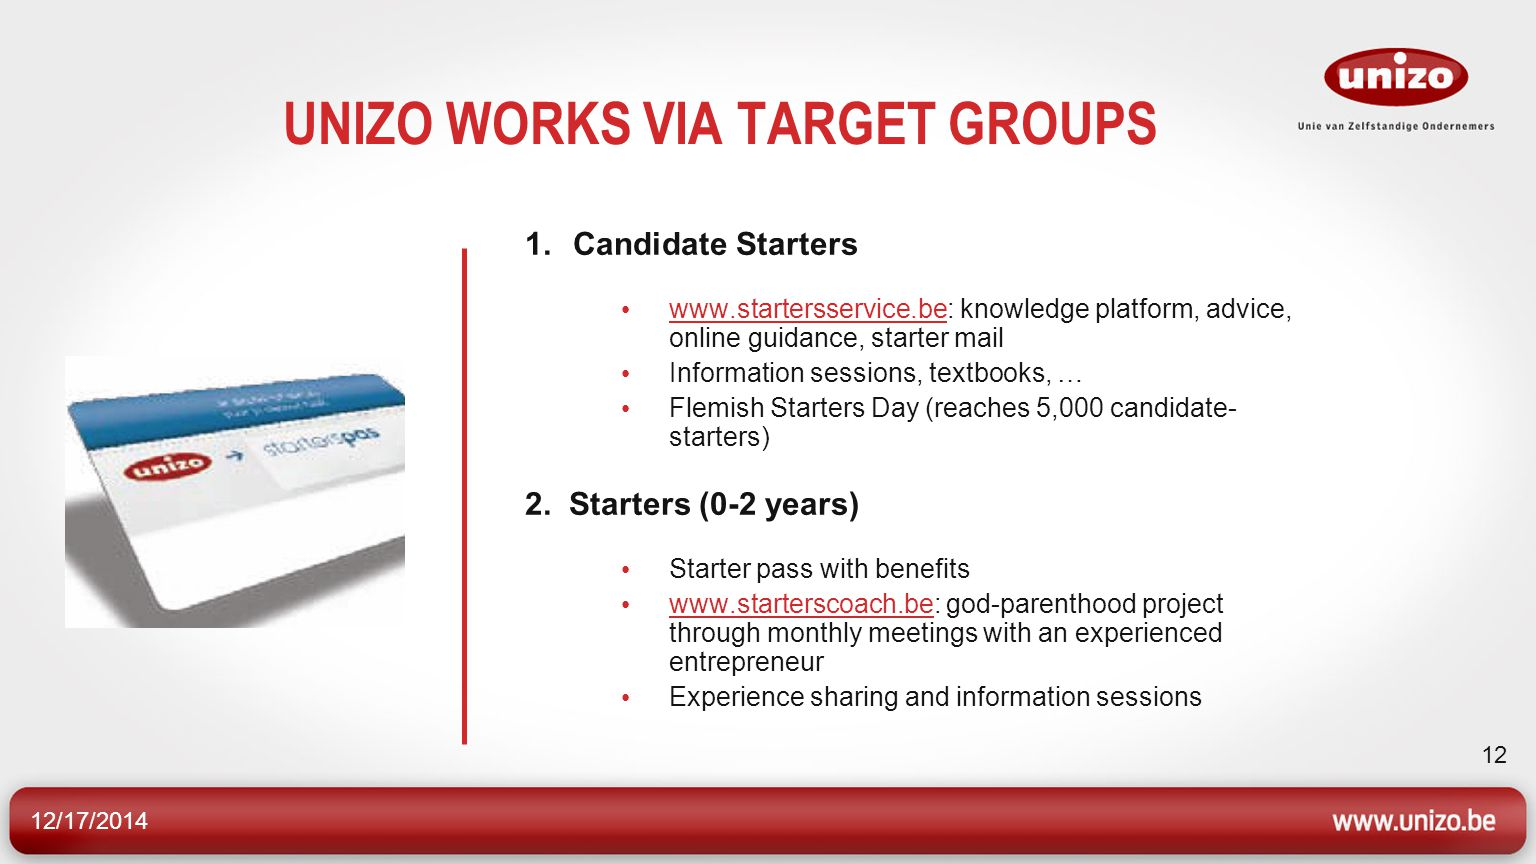 12/17/2014 12 UNIZO WORKS VIA TARGET GROUPS 1.Candidate Starters www.startersservice.be: knowledge platform, advice, online guidance, starter mail www.startersservice.be Information sessions, textbooks, … Flemish Starters Day (reaches 5,000 candidate- starters) 2.